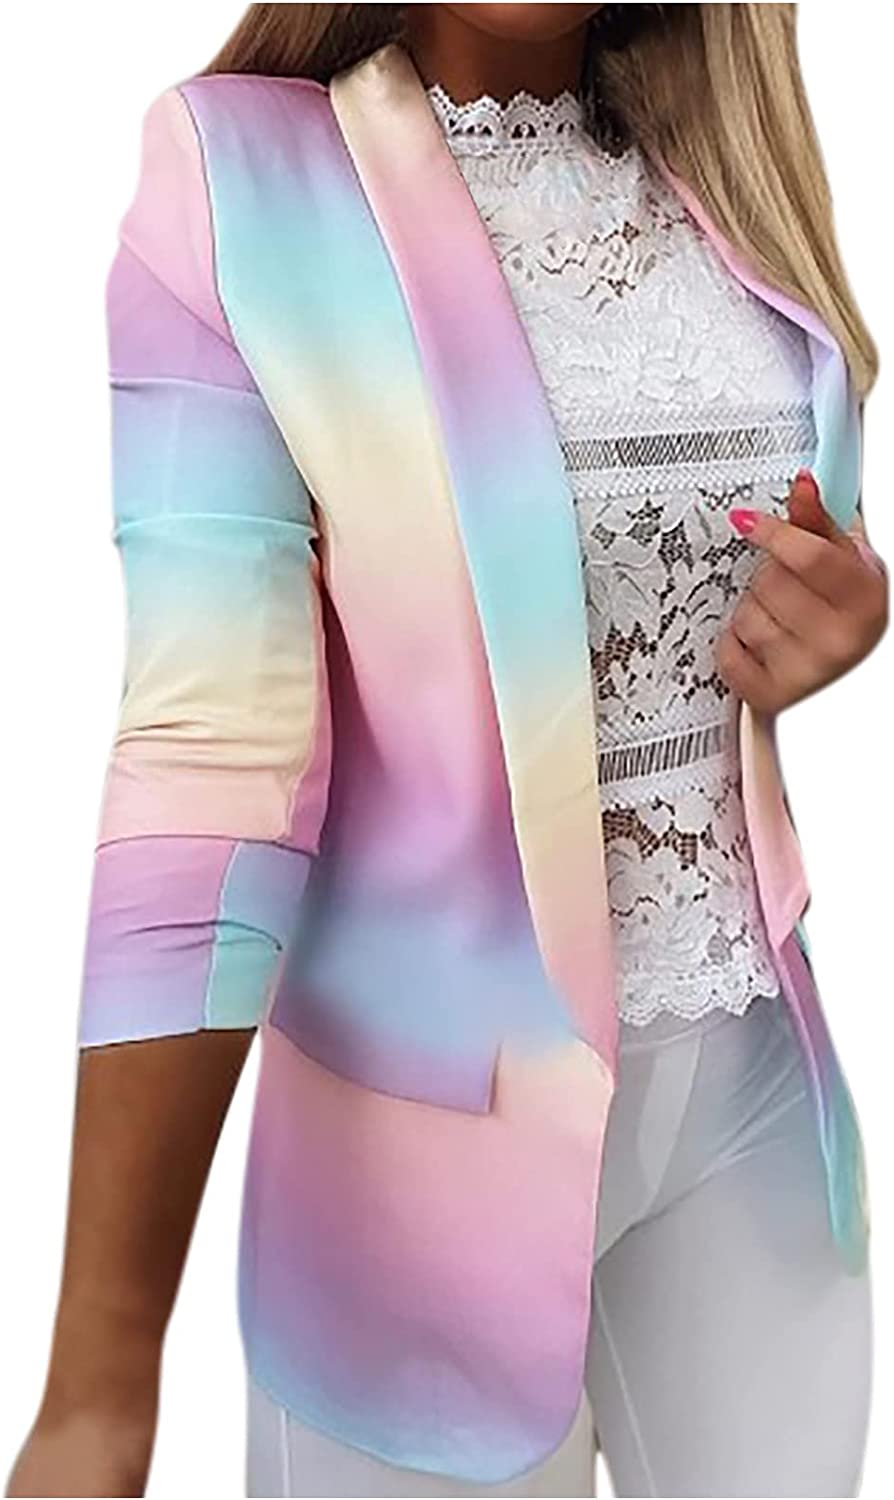 Womens Business Jackets Gradient Print Open Max 80% OFF Shirt Cardigan Max 70% OFF Front